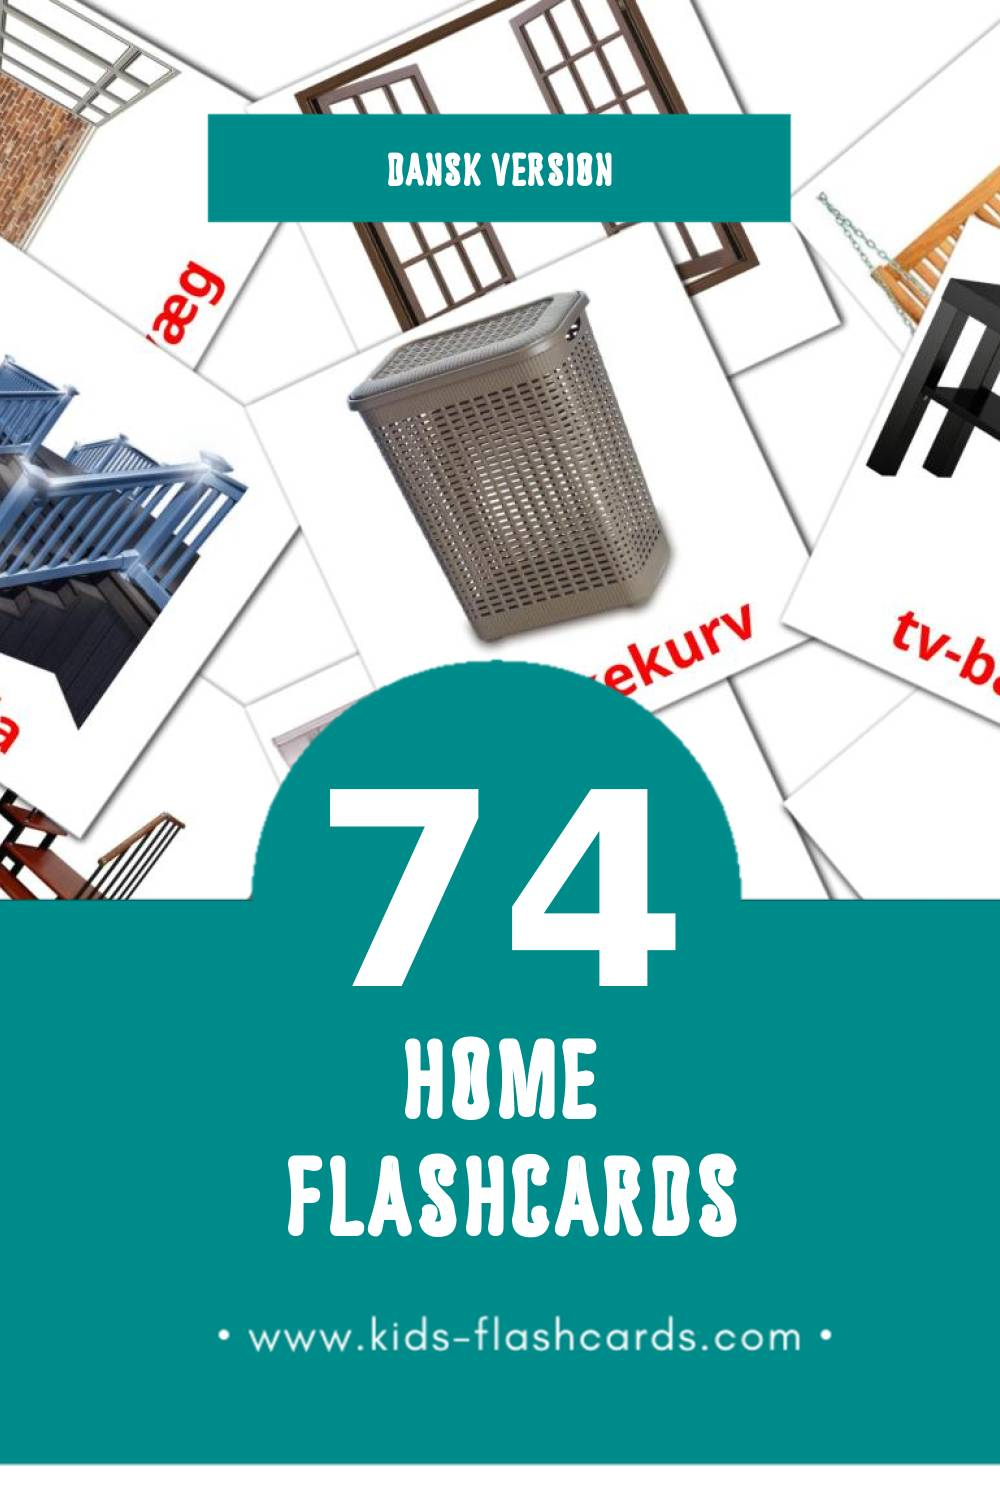 Visual Hjemme Flashcards for Toddlers (74 cards in Dansk)